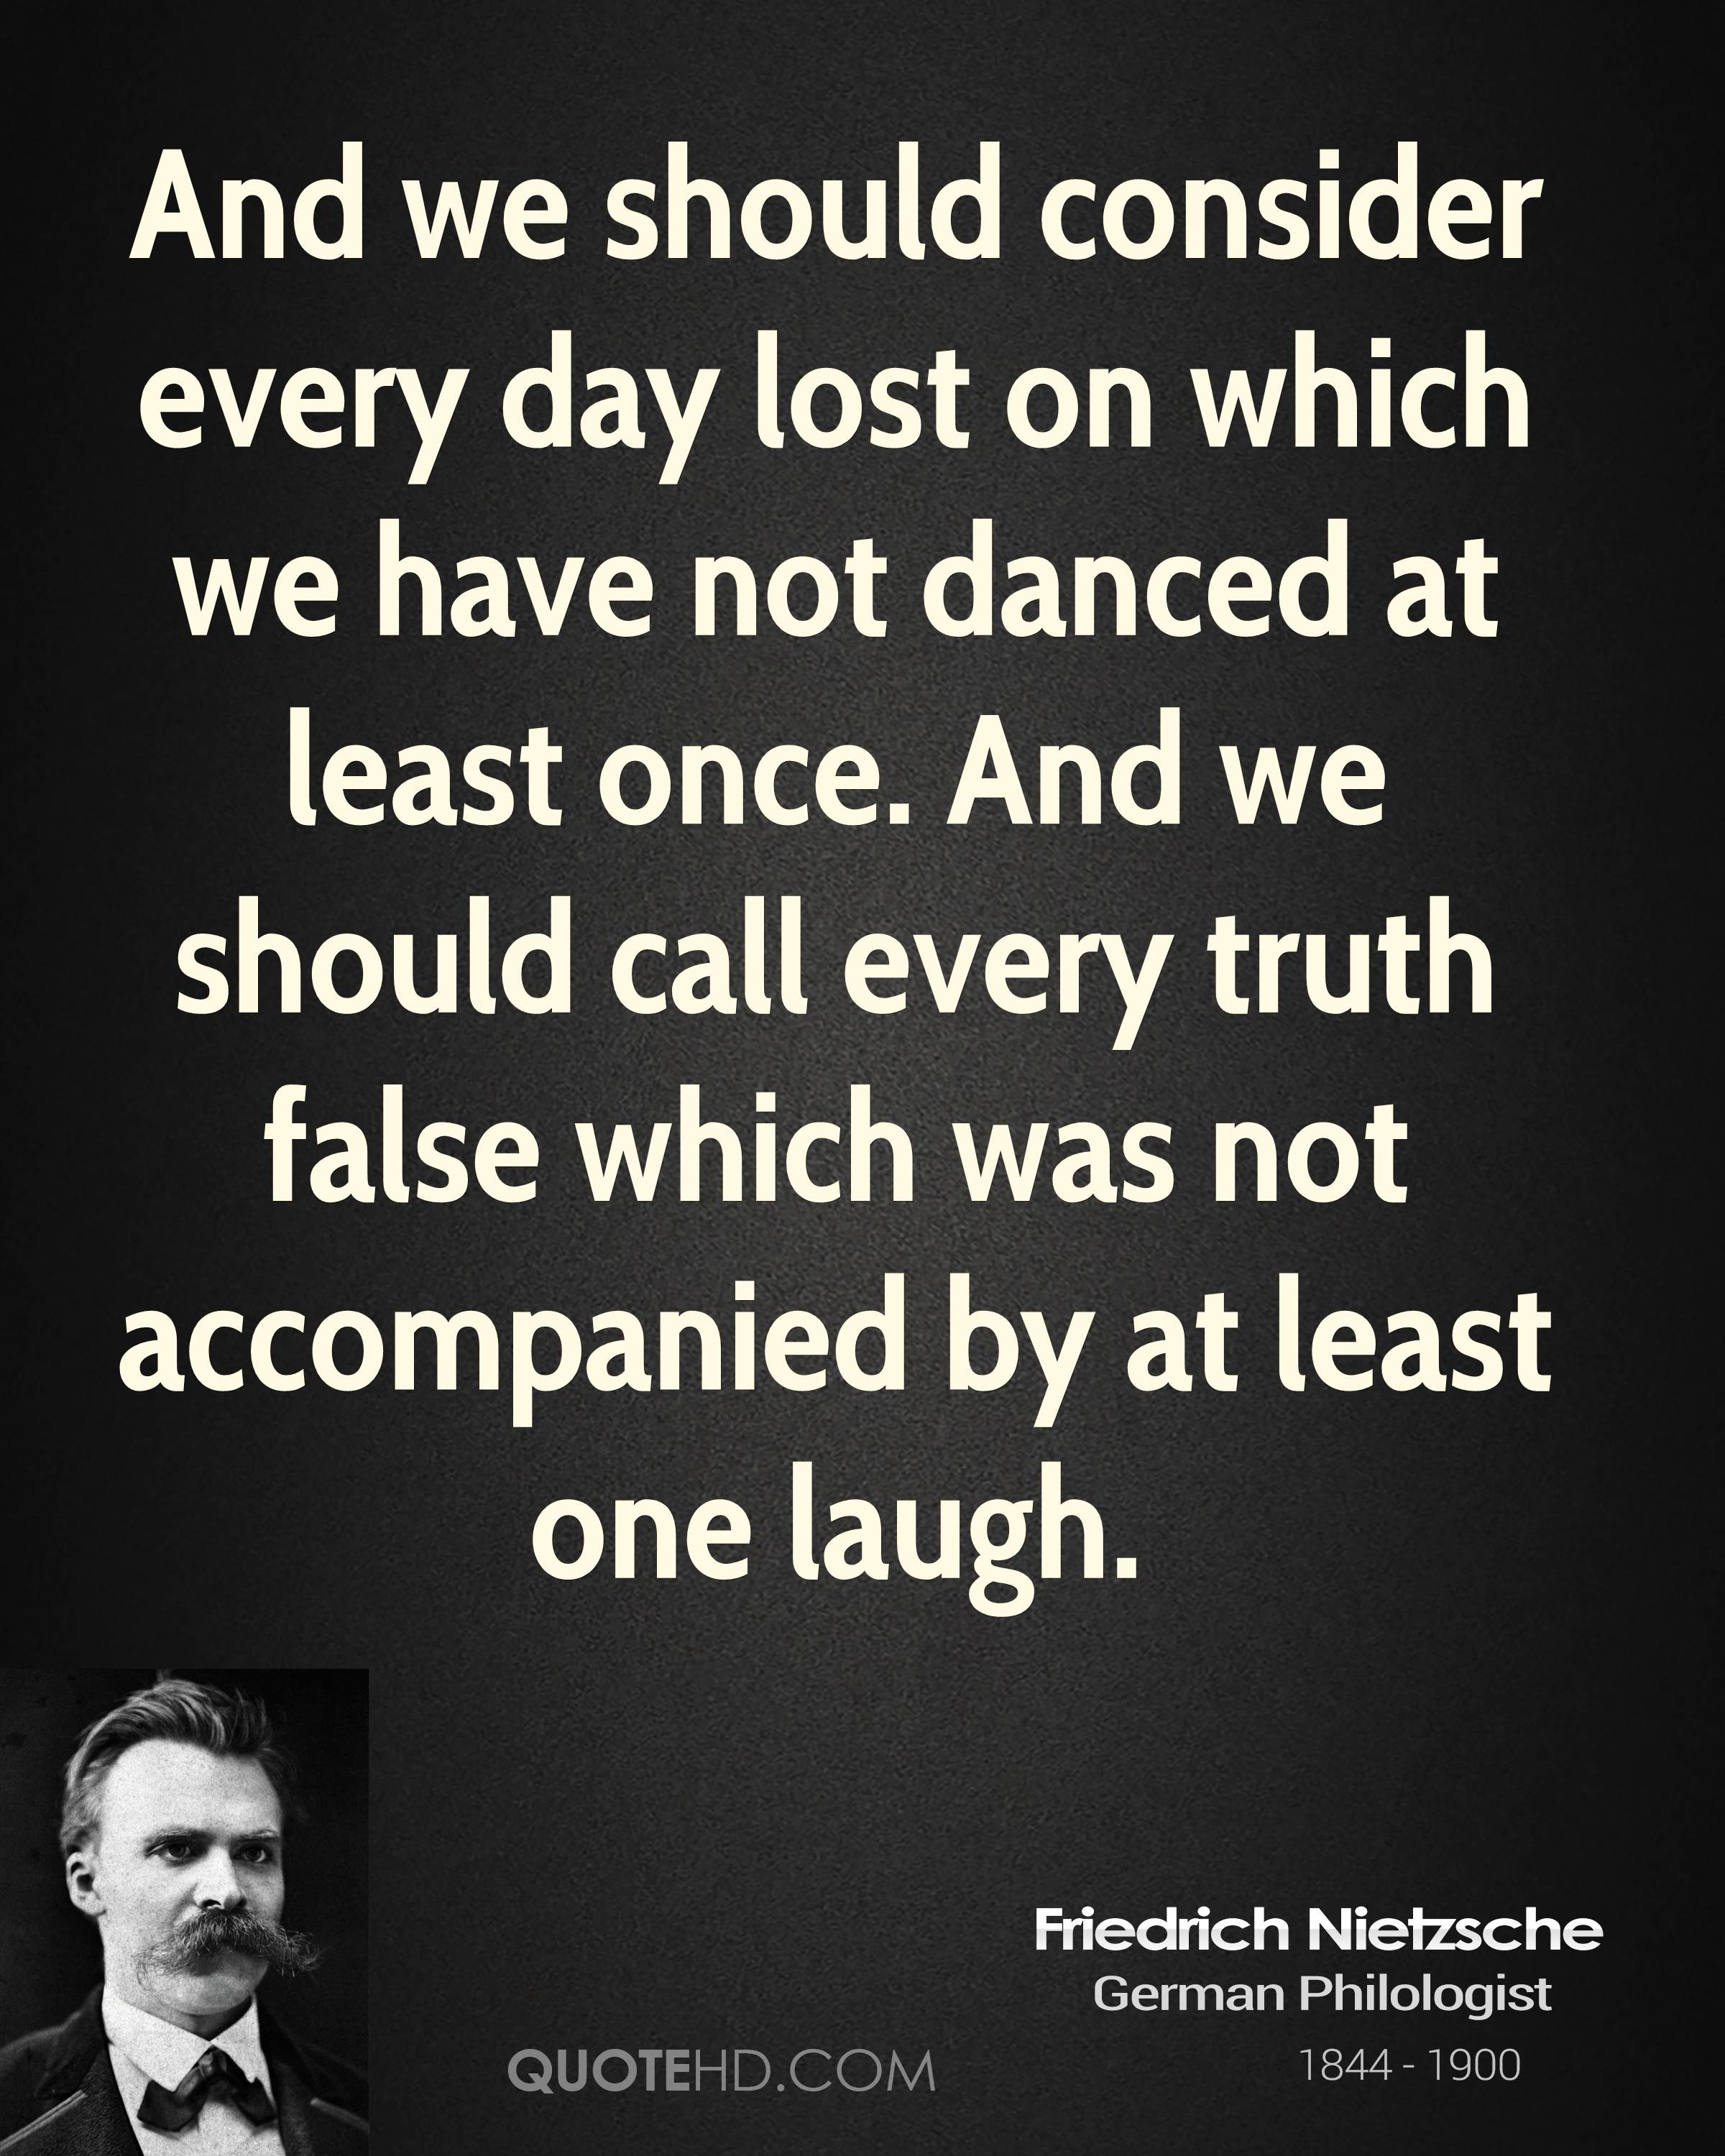 And we should consider every day lost on which we have not danced at least once. And we should call every truth false which was not accompanied by at least one laugh.